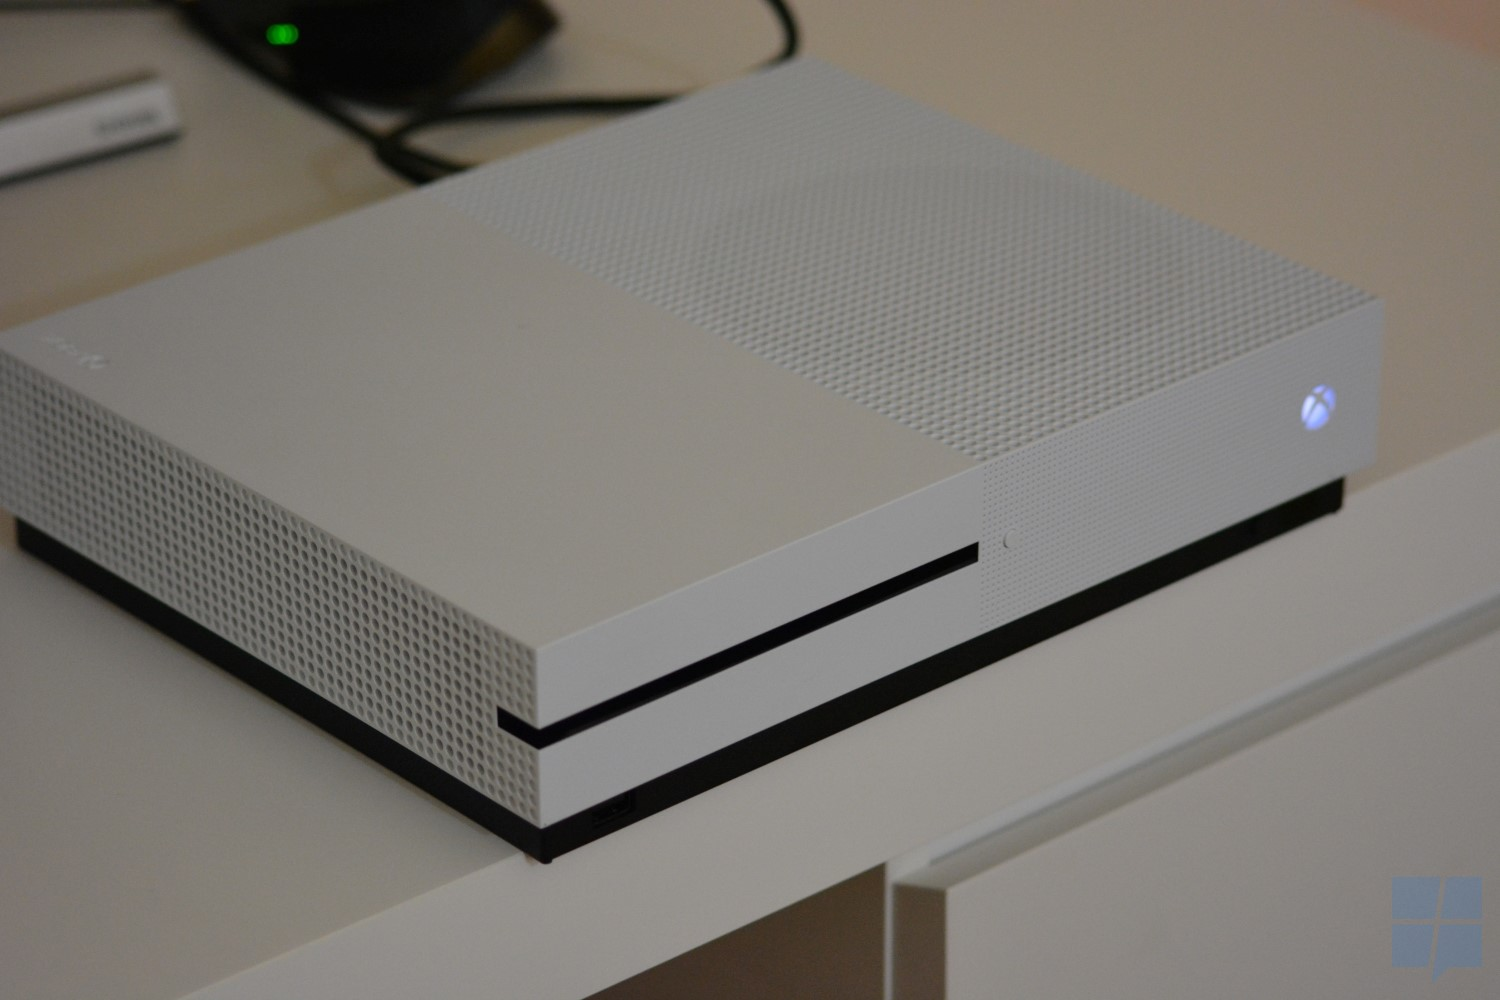 xbox one s owners manual